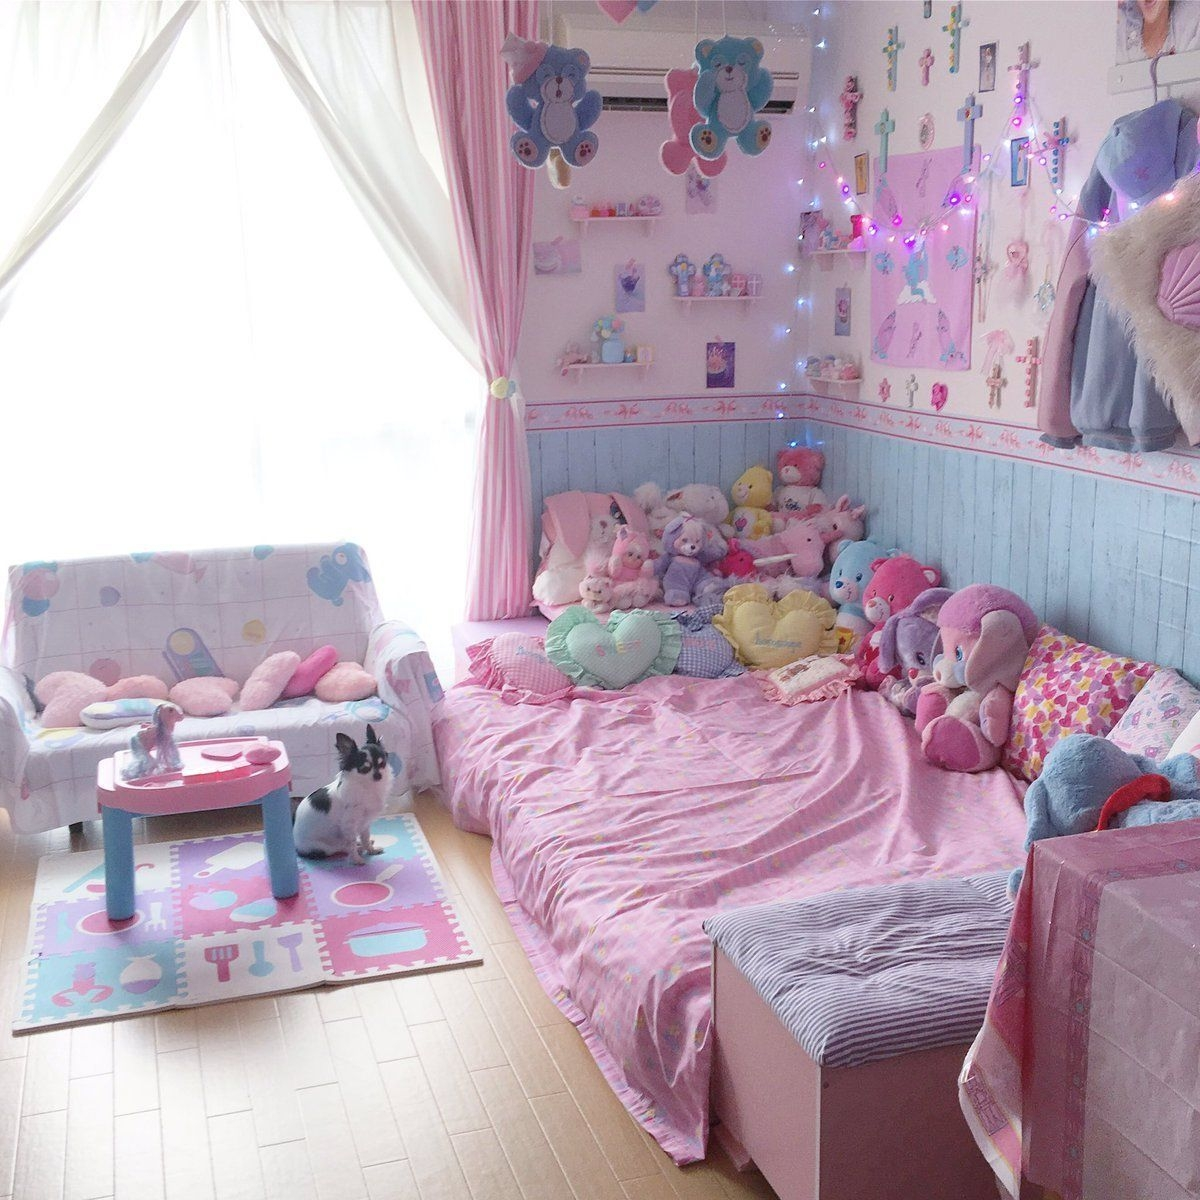 Blippocom Kawaii Shop  Cute room ideas Cute bedroom ideas